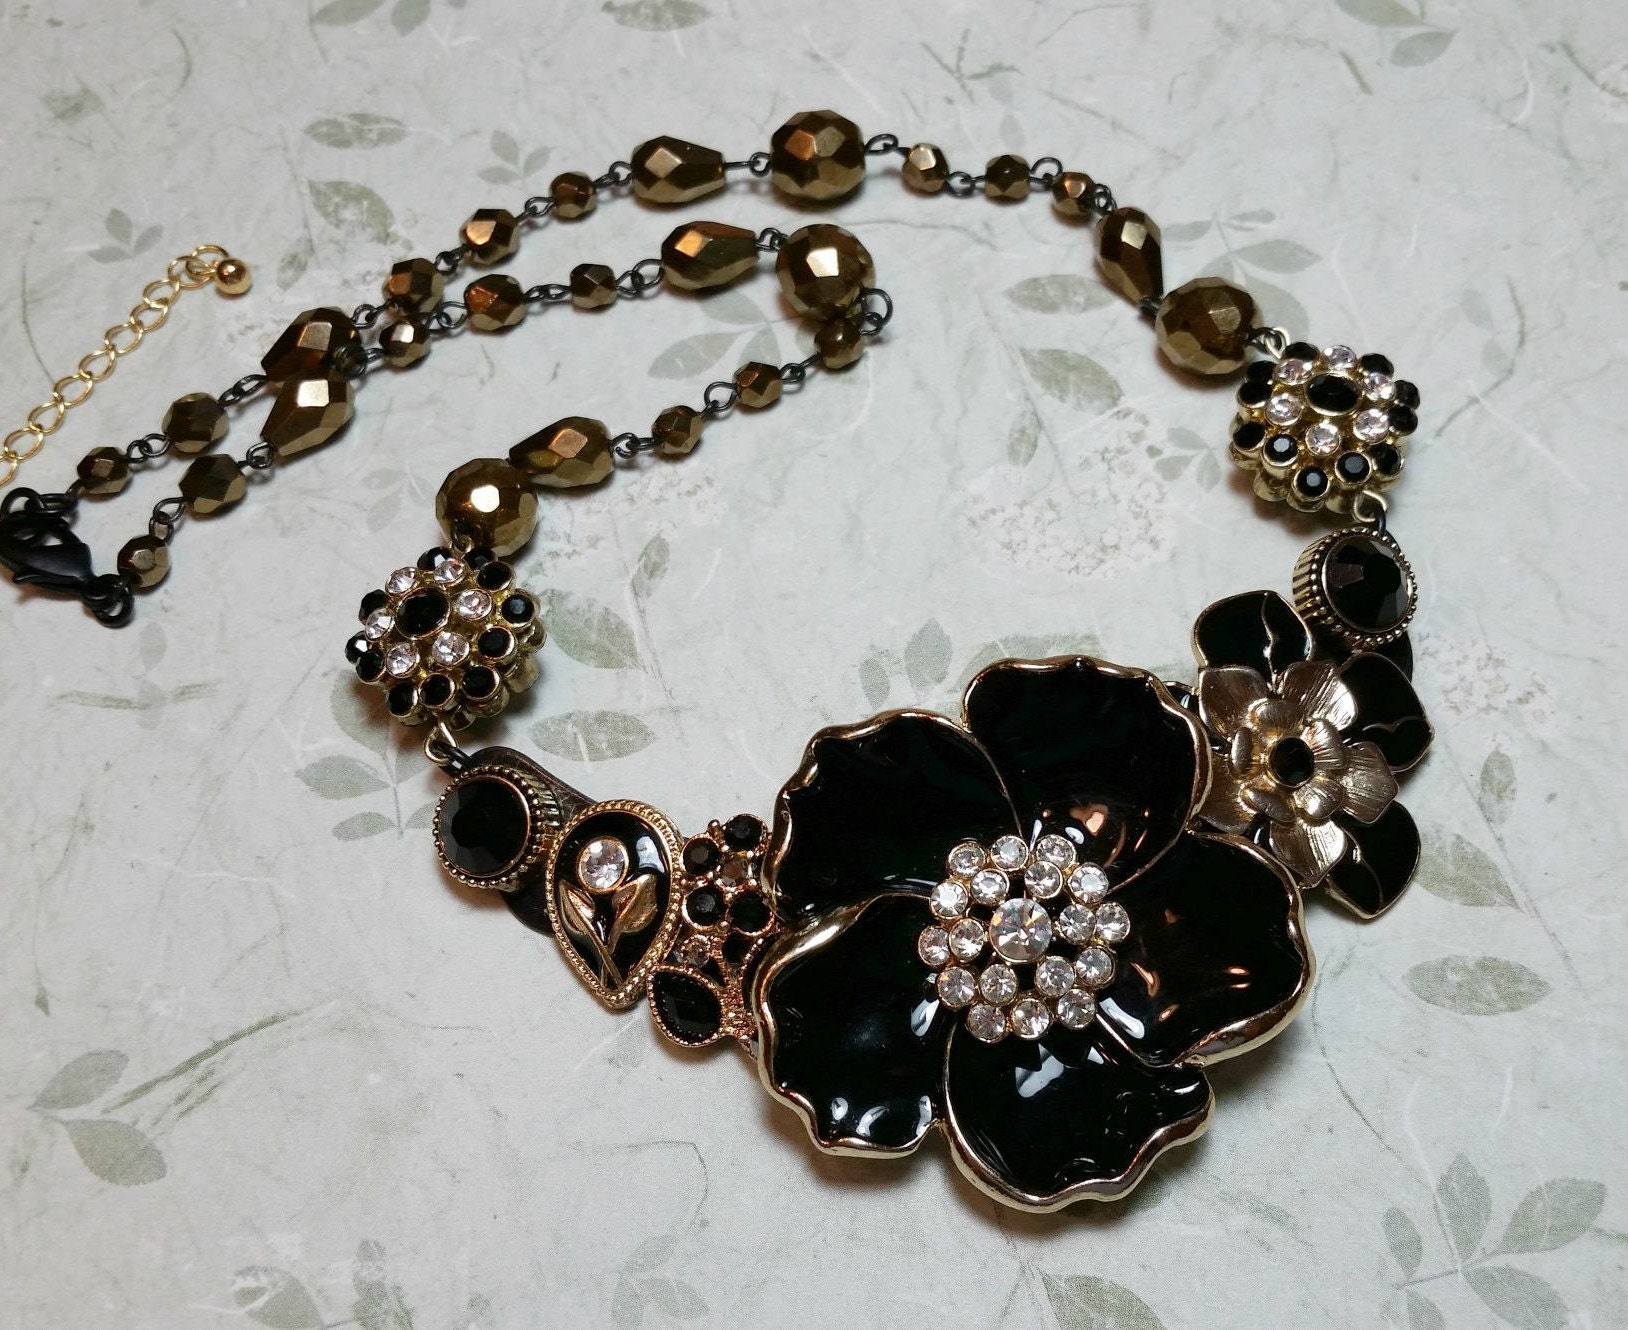 Black u0026 Gold Statement Necklace Repurposed Costume Jewelry Collar Necklace Upcycled Bling & Black u0026 Gold Statement Necklace Repurposed Costume Jewelry Collar ...